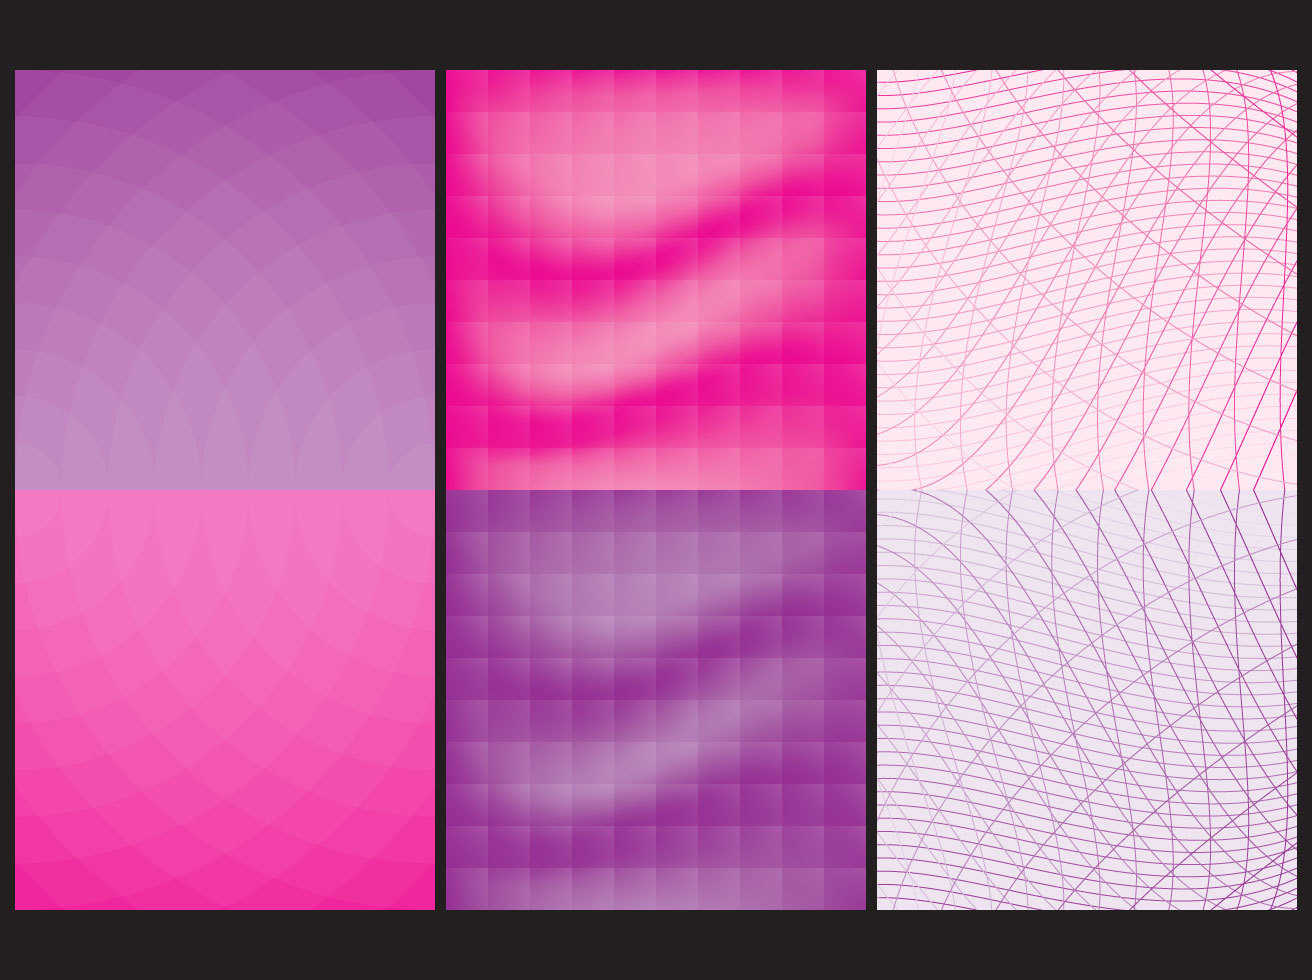 Pink And Violet Backgrounds